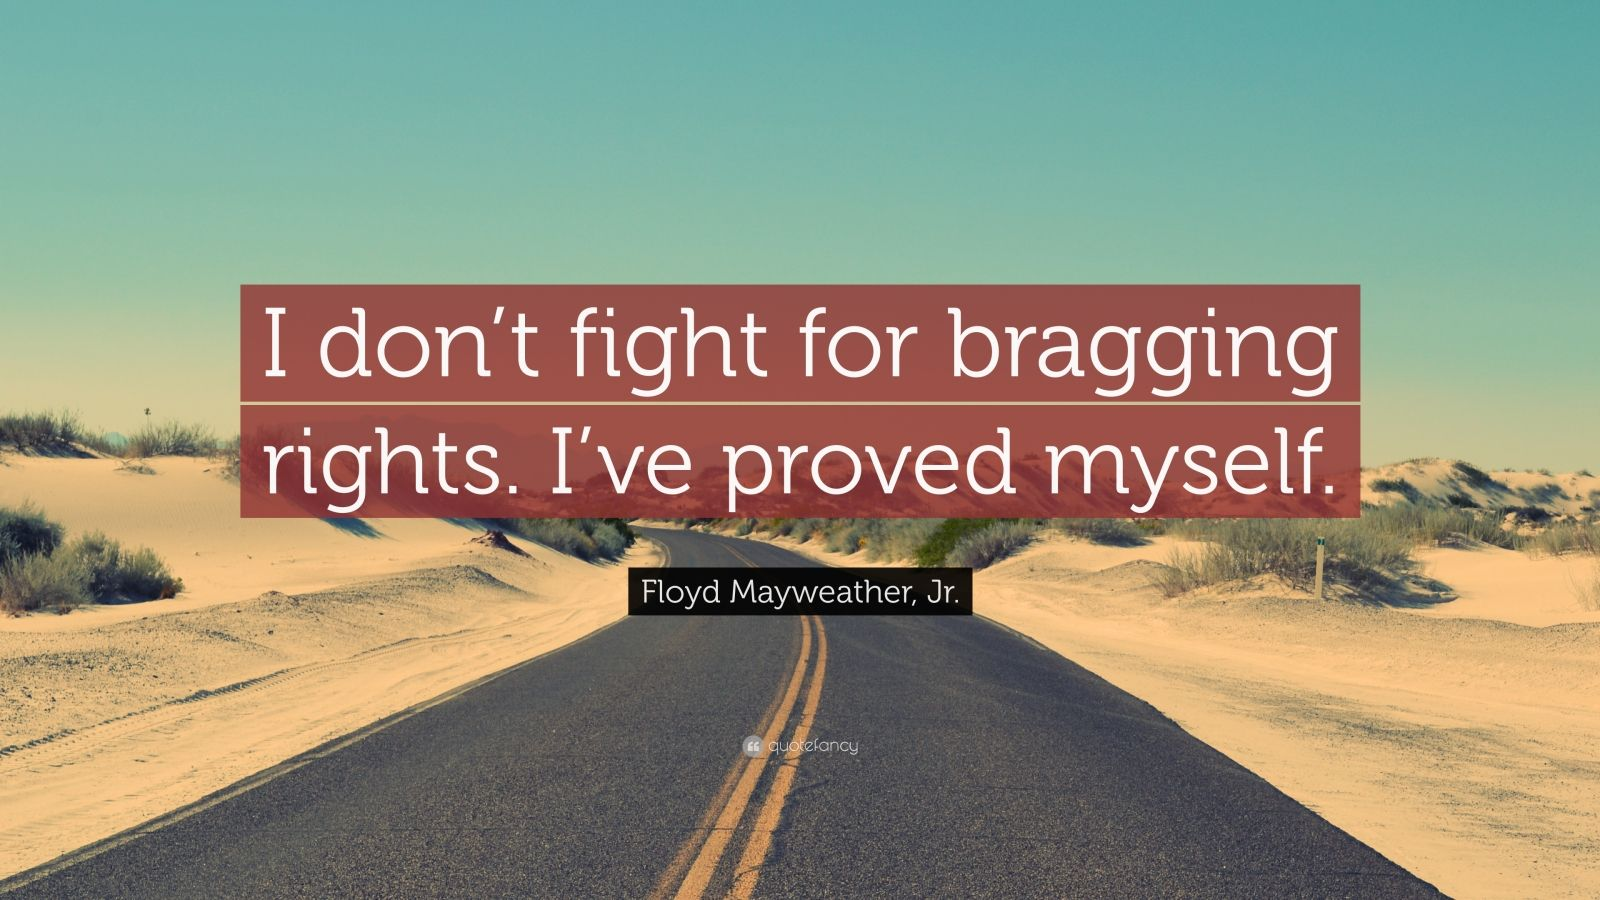 """Floyd Mayweather, Jr. Quote: """"I don't fight for bragging rights. I've proved myself."""""""